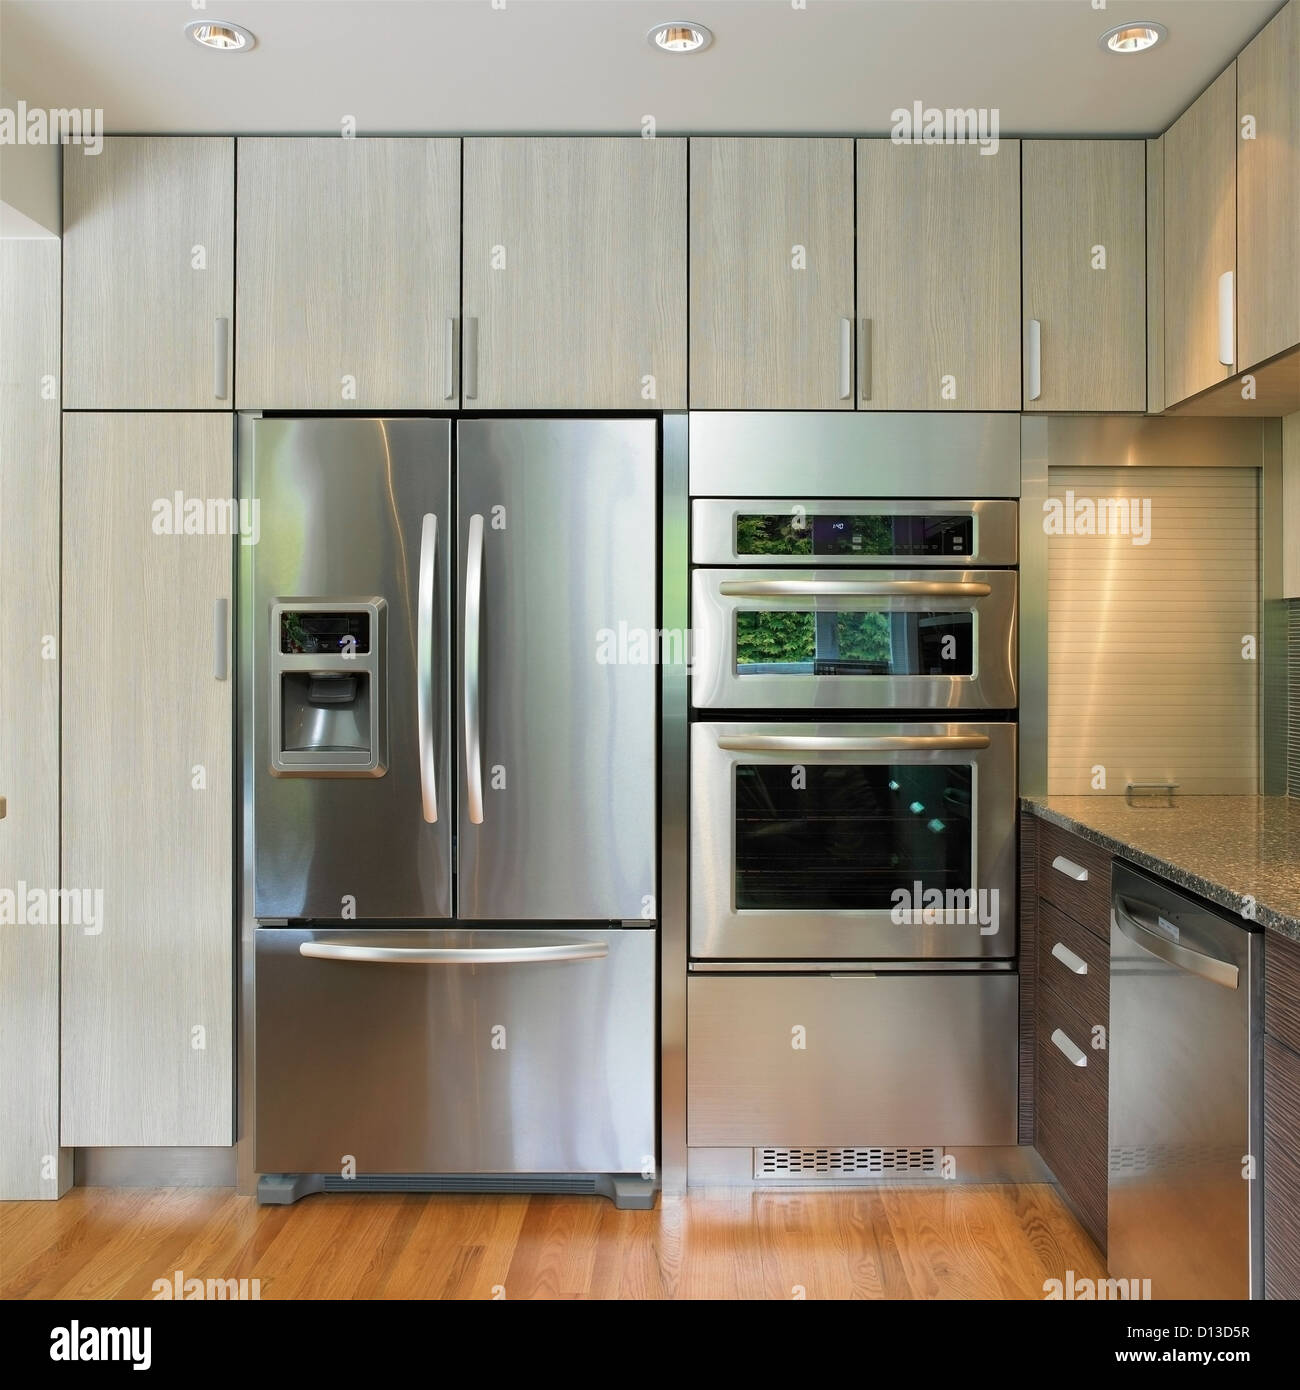 Modular Kitchen Design With Fridge Kitchen Wall Featuring Built-in Fridge And Wall Oven